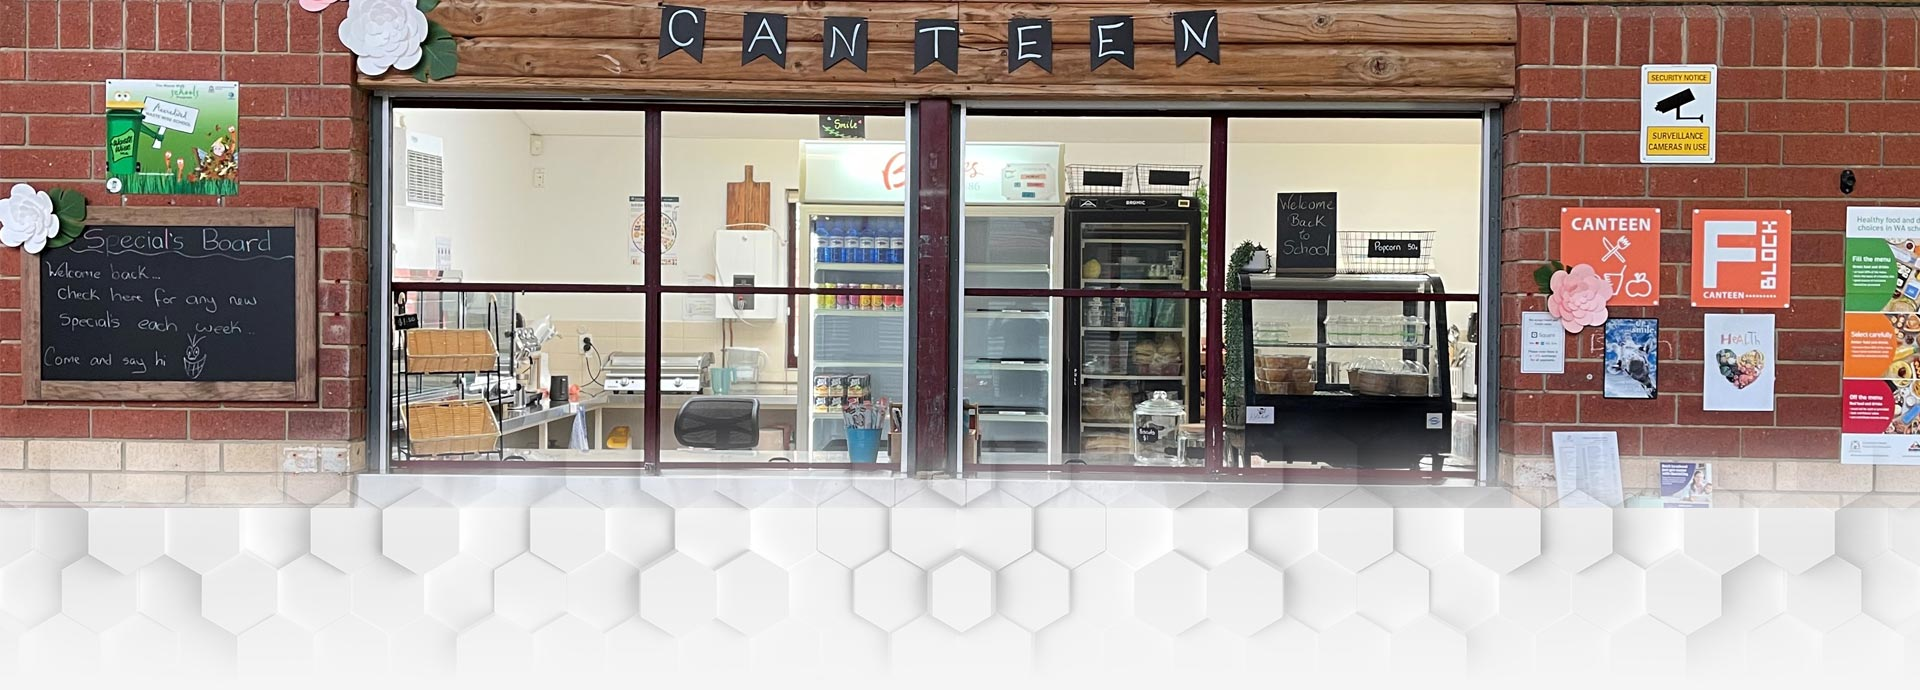 Canteen Coogee Primary School